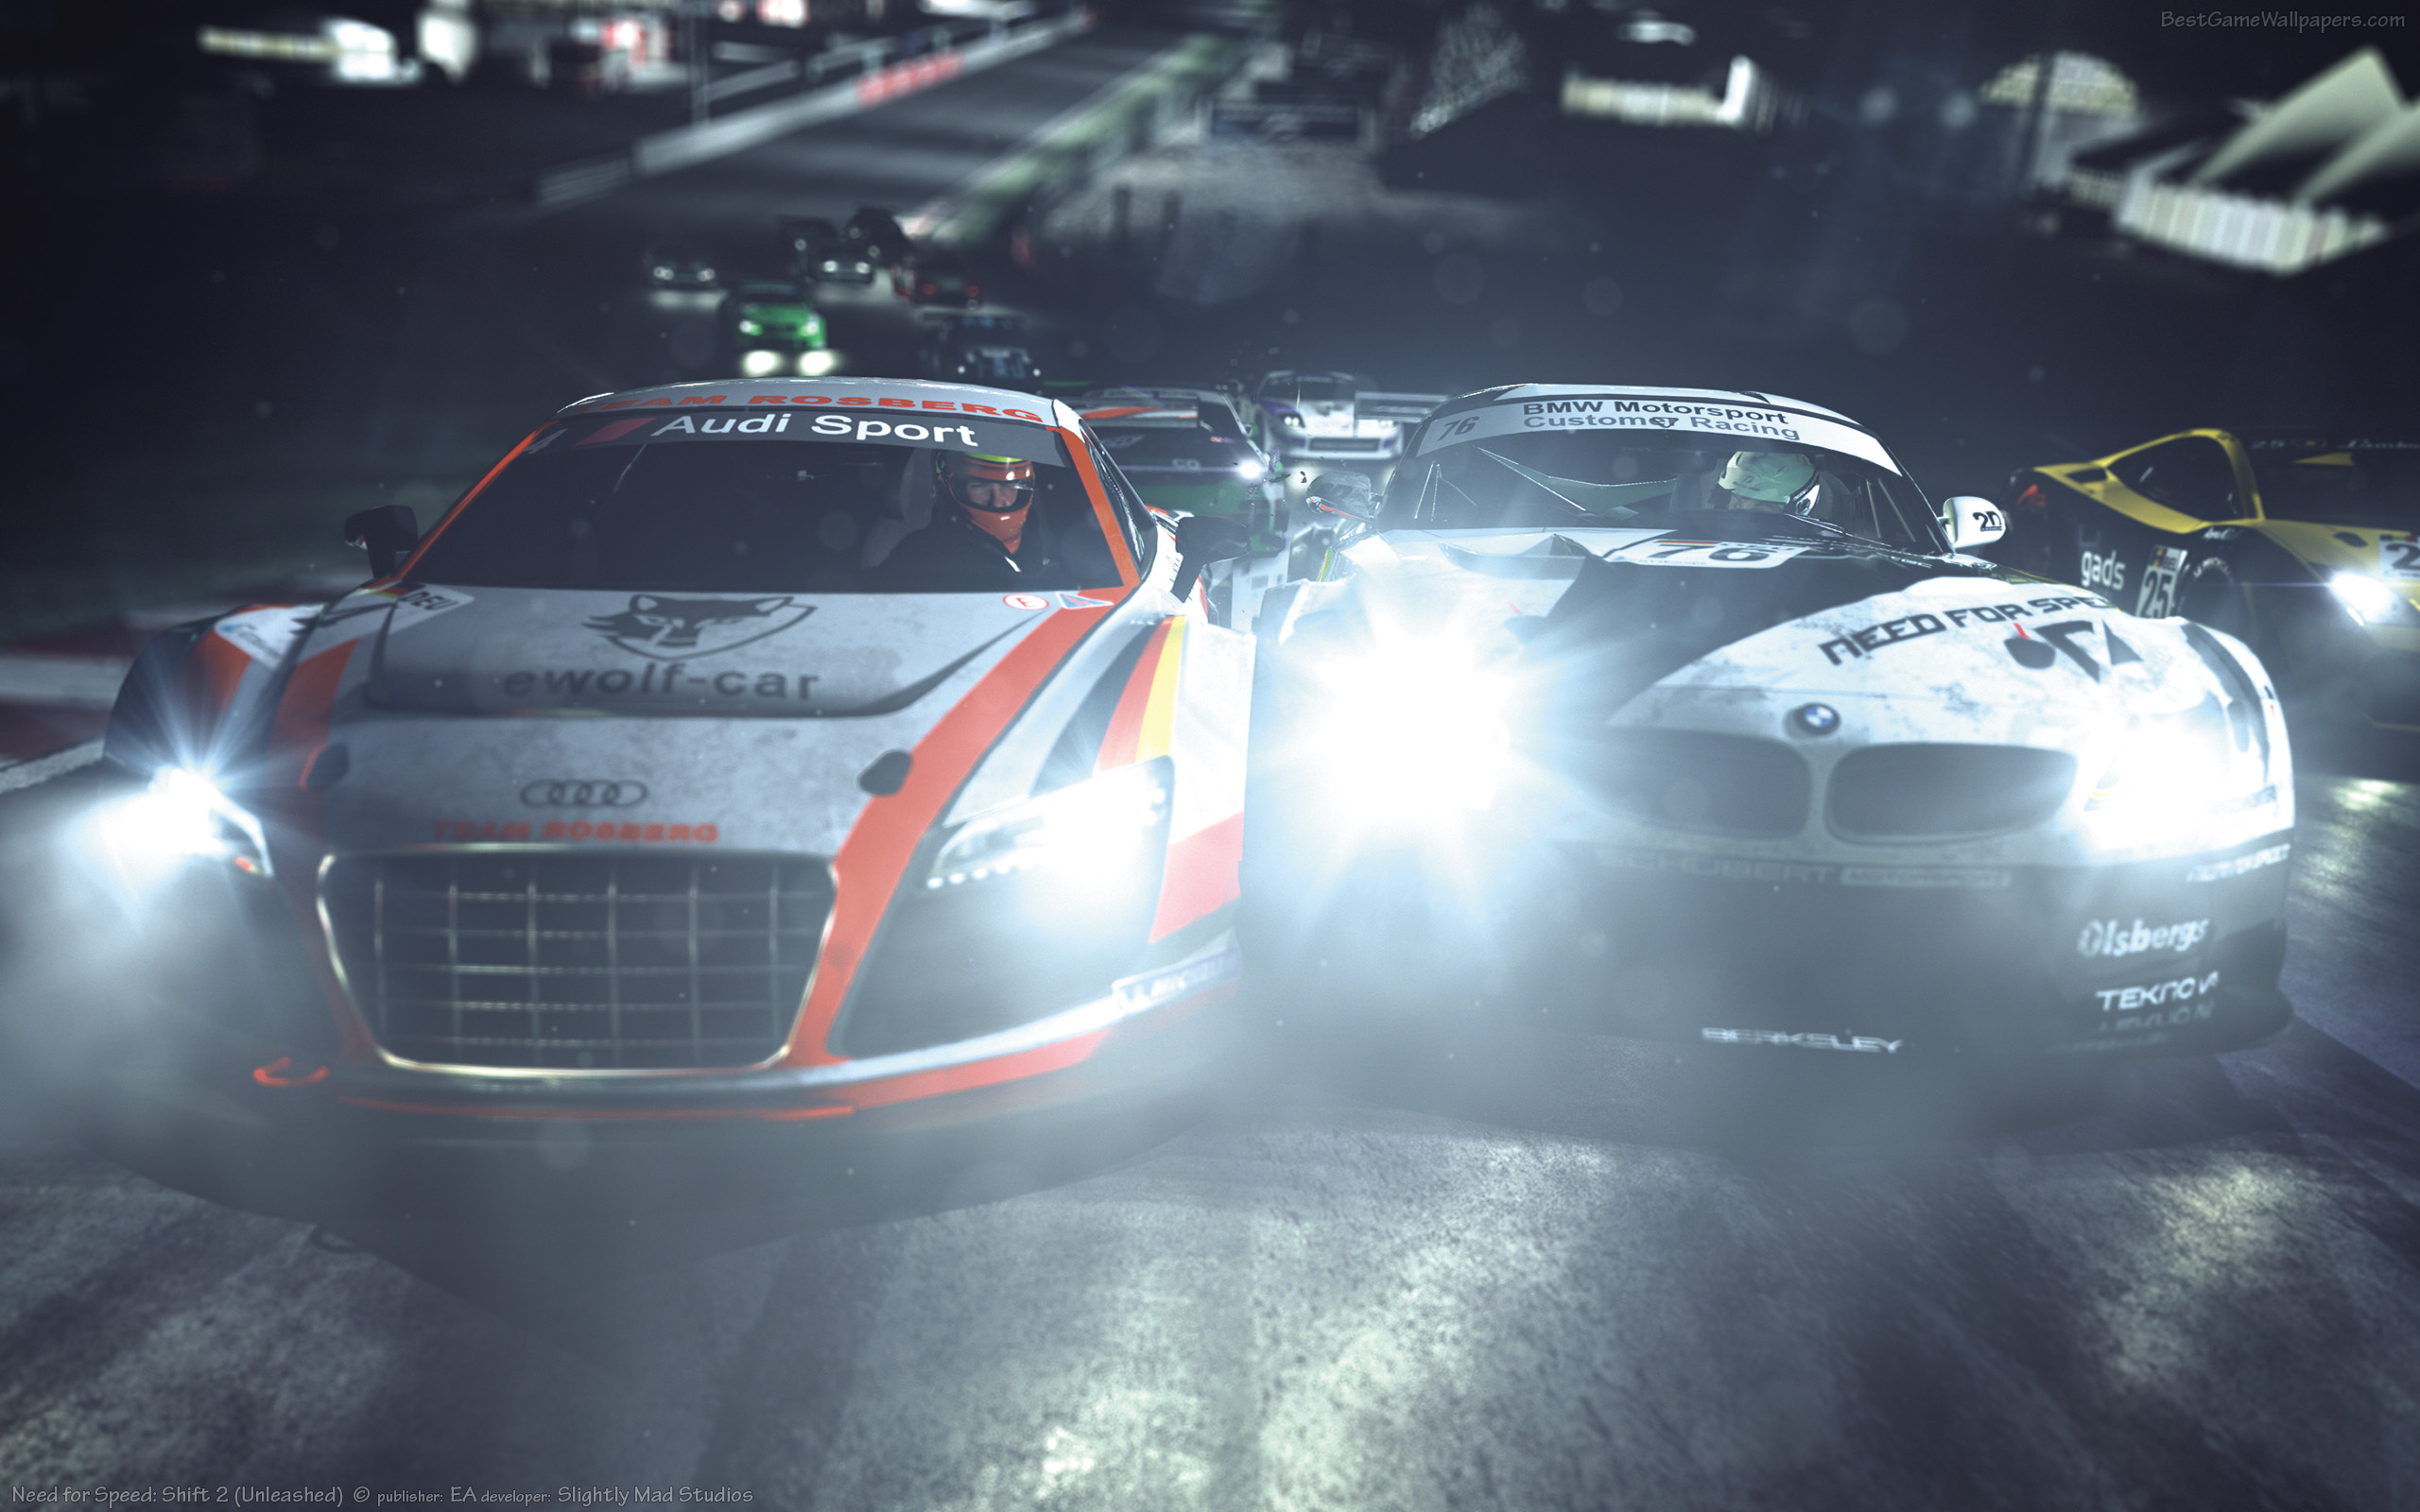 Nfs Most Wanted 2012 Cars Wallpapers Need For Speed Shift 2 Wallpapers Need For Speed Shift